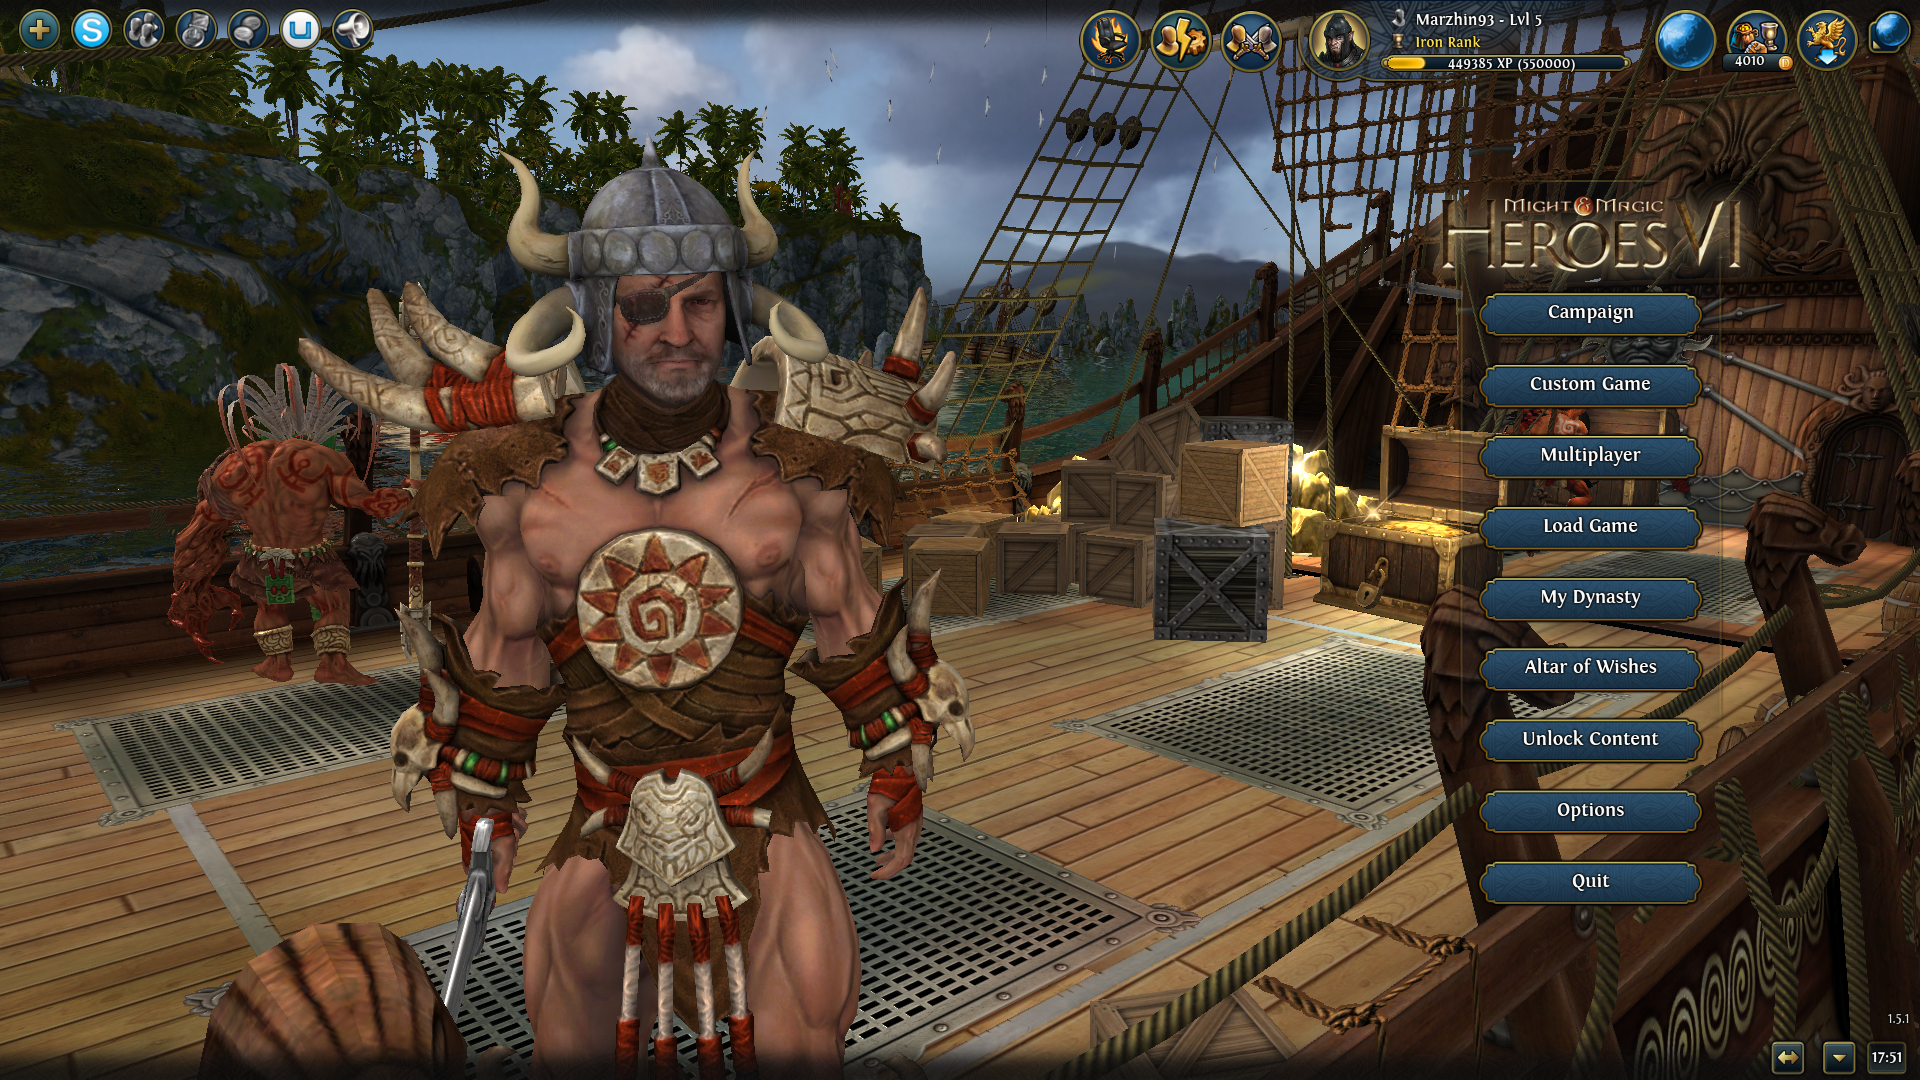 Might & Magic: Heroes VI - Pirates of the Savage Sea Windows New main menu screen, featuring Crag Hack himself.